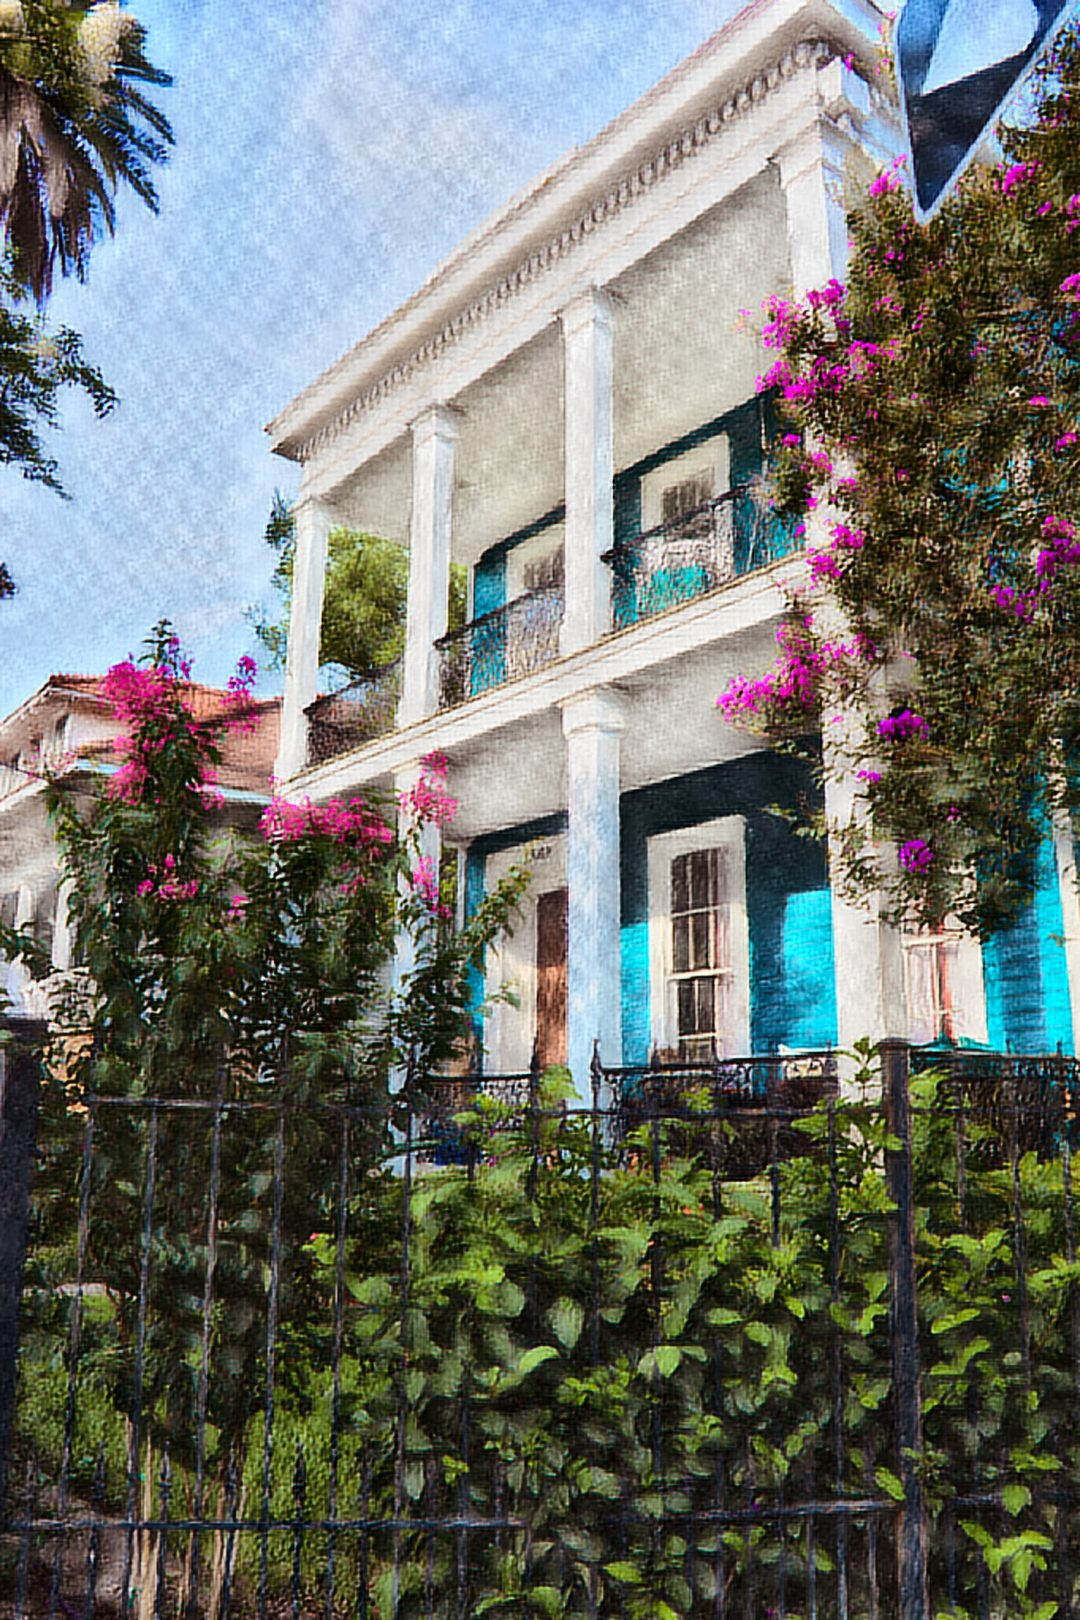 Doric columns in the Garden District of New Orleans